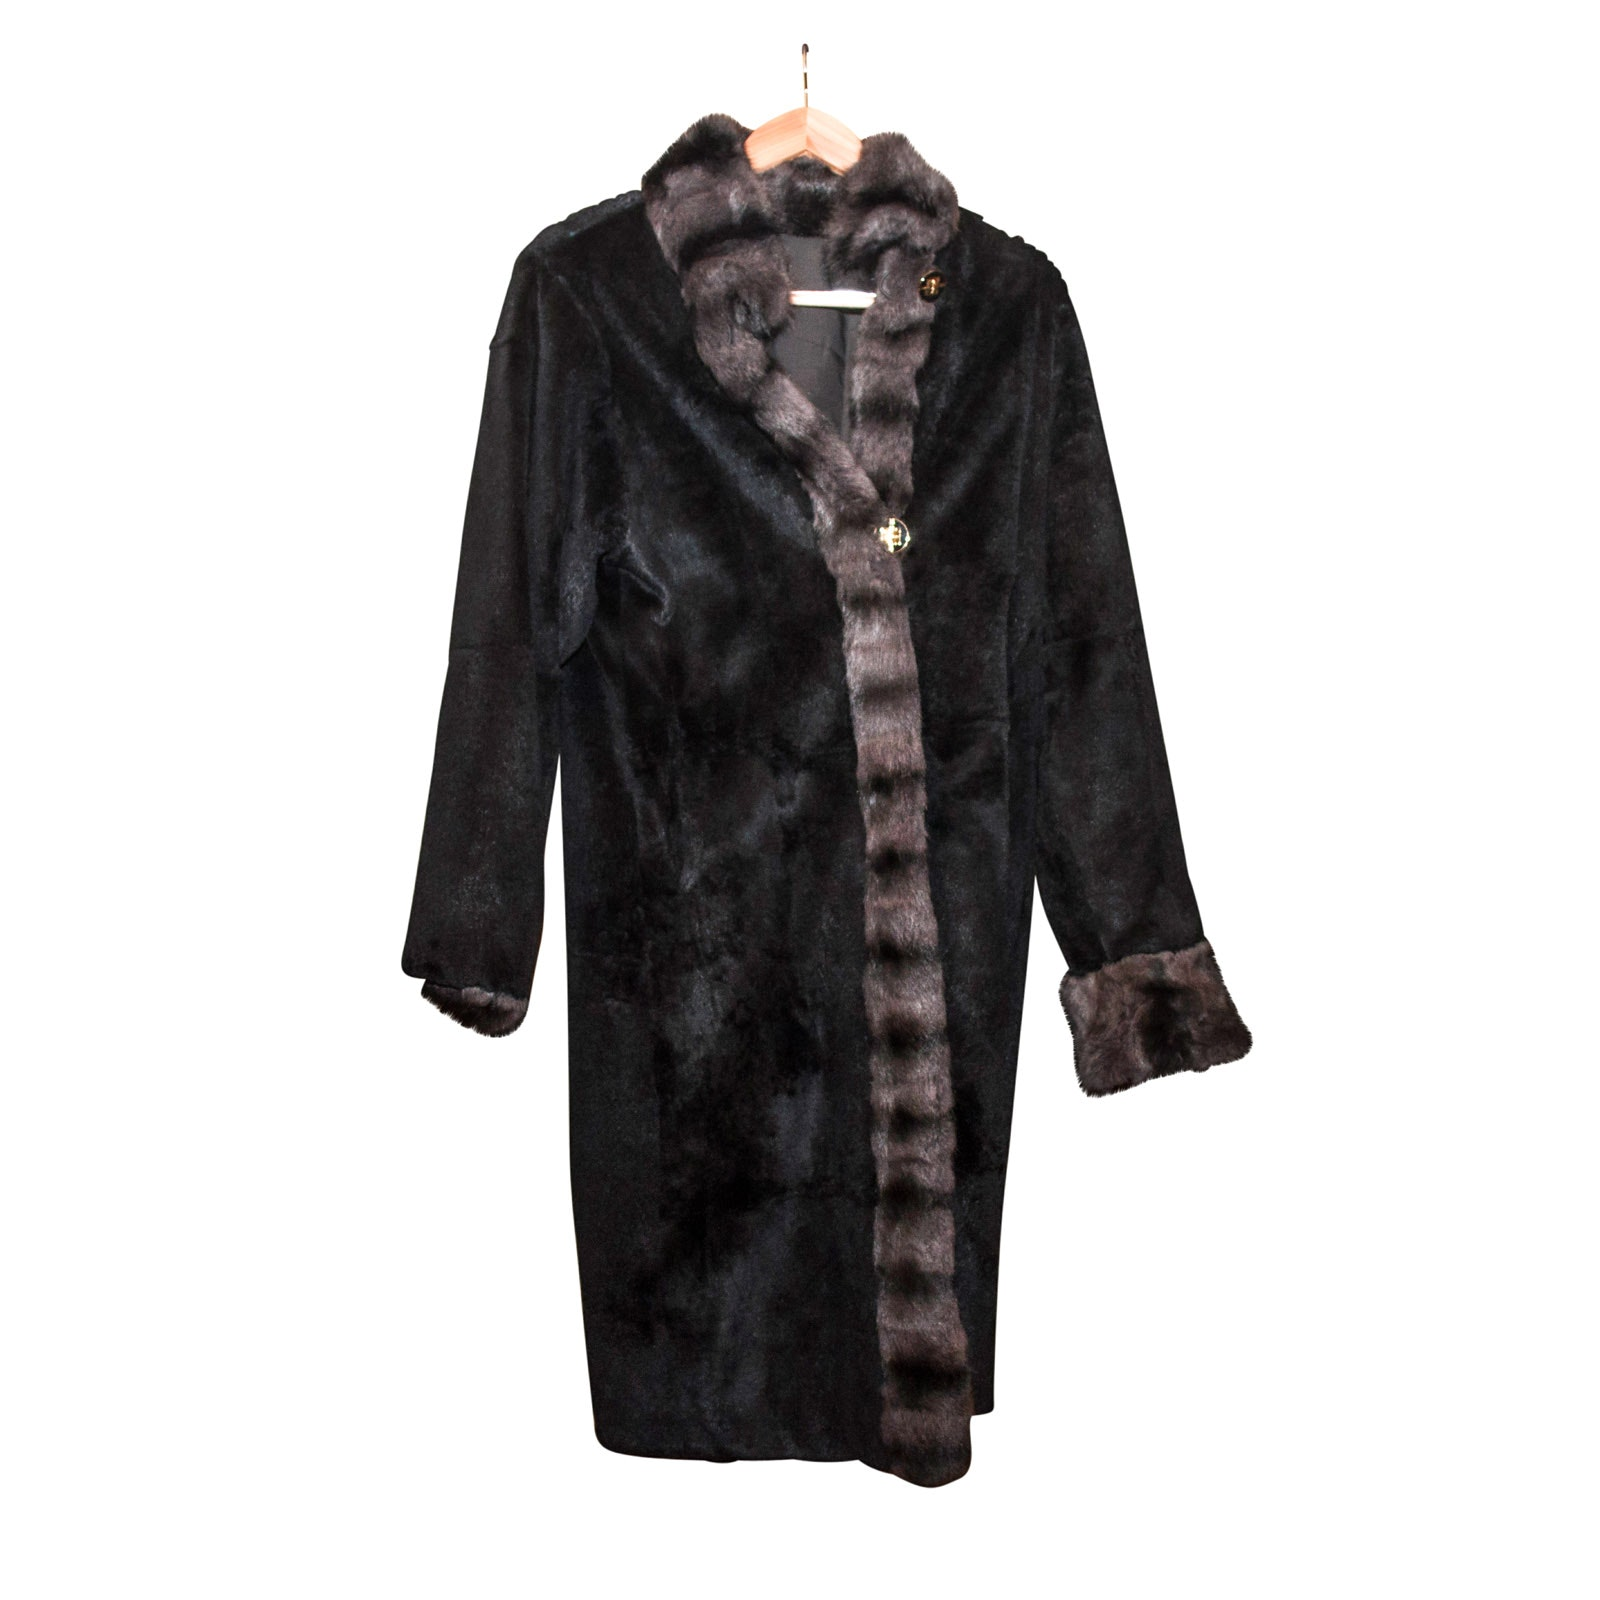 St. John Black Sheared Rabbit Reversible Coat